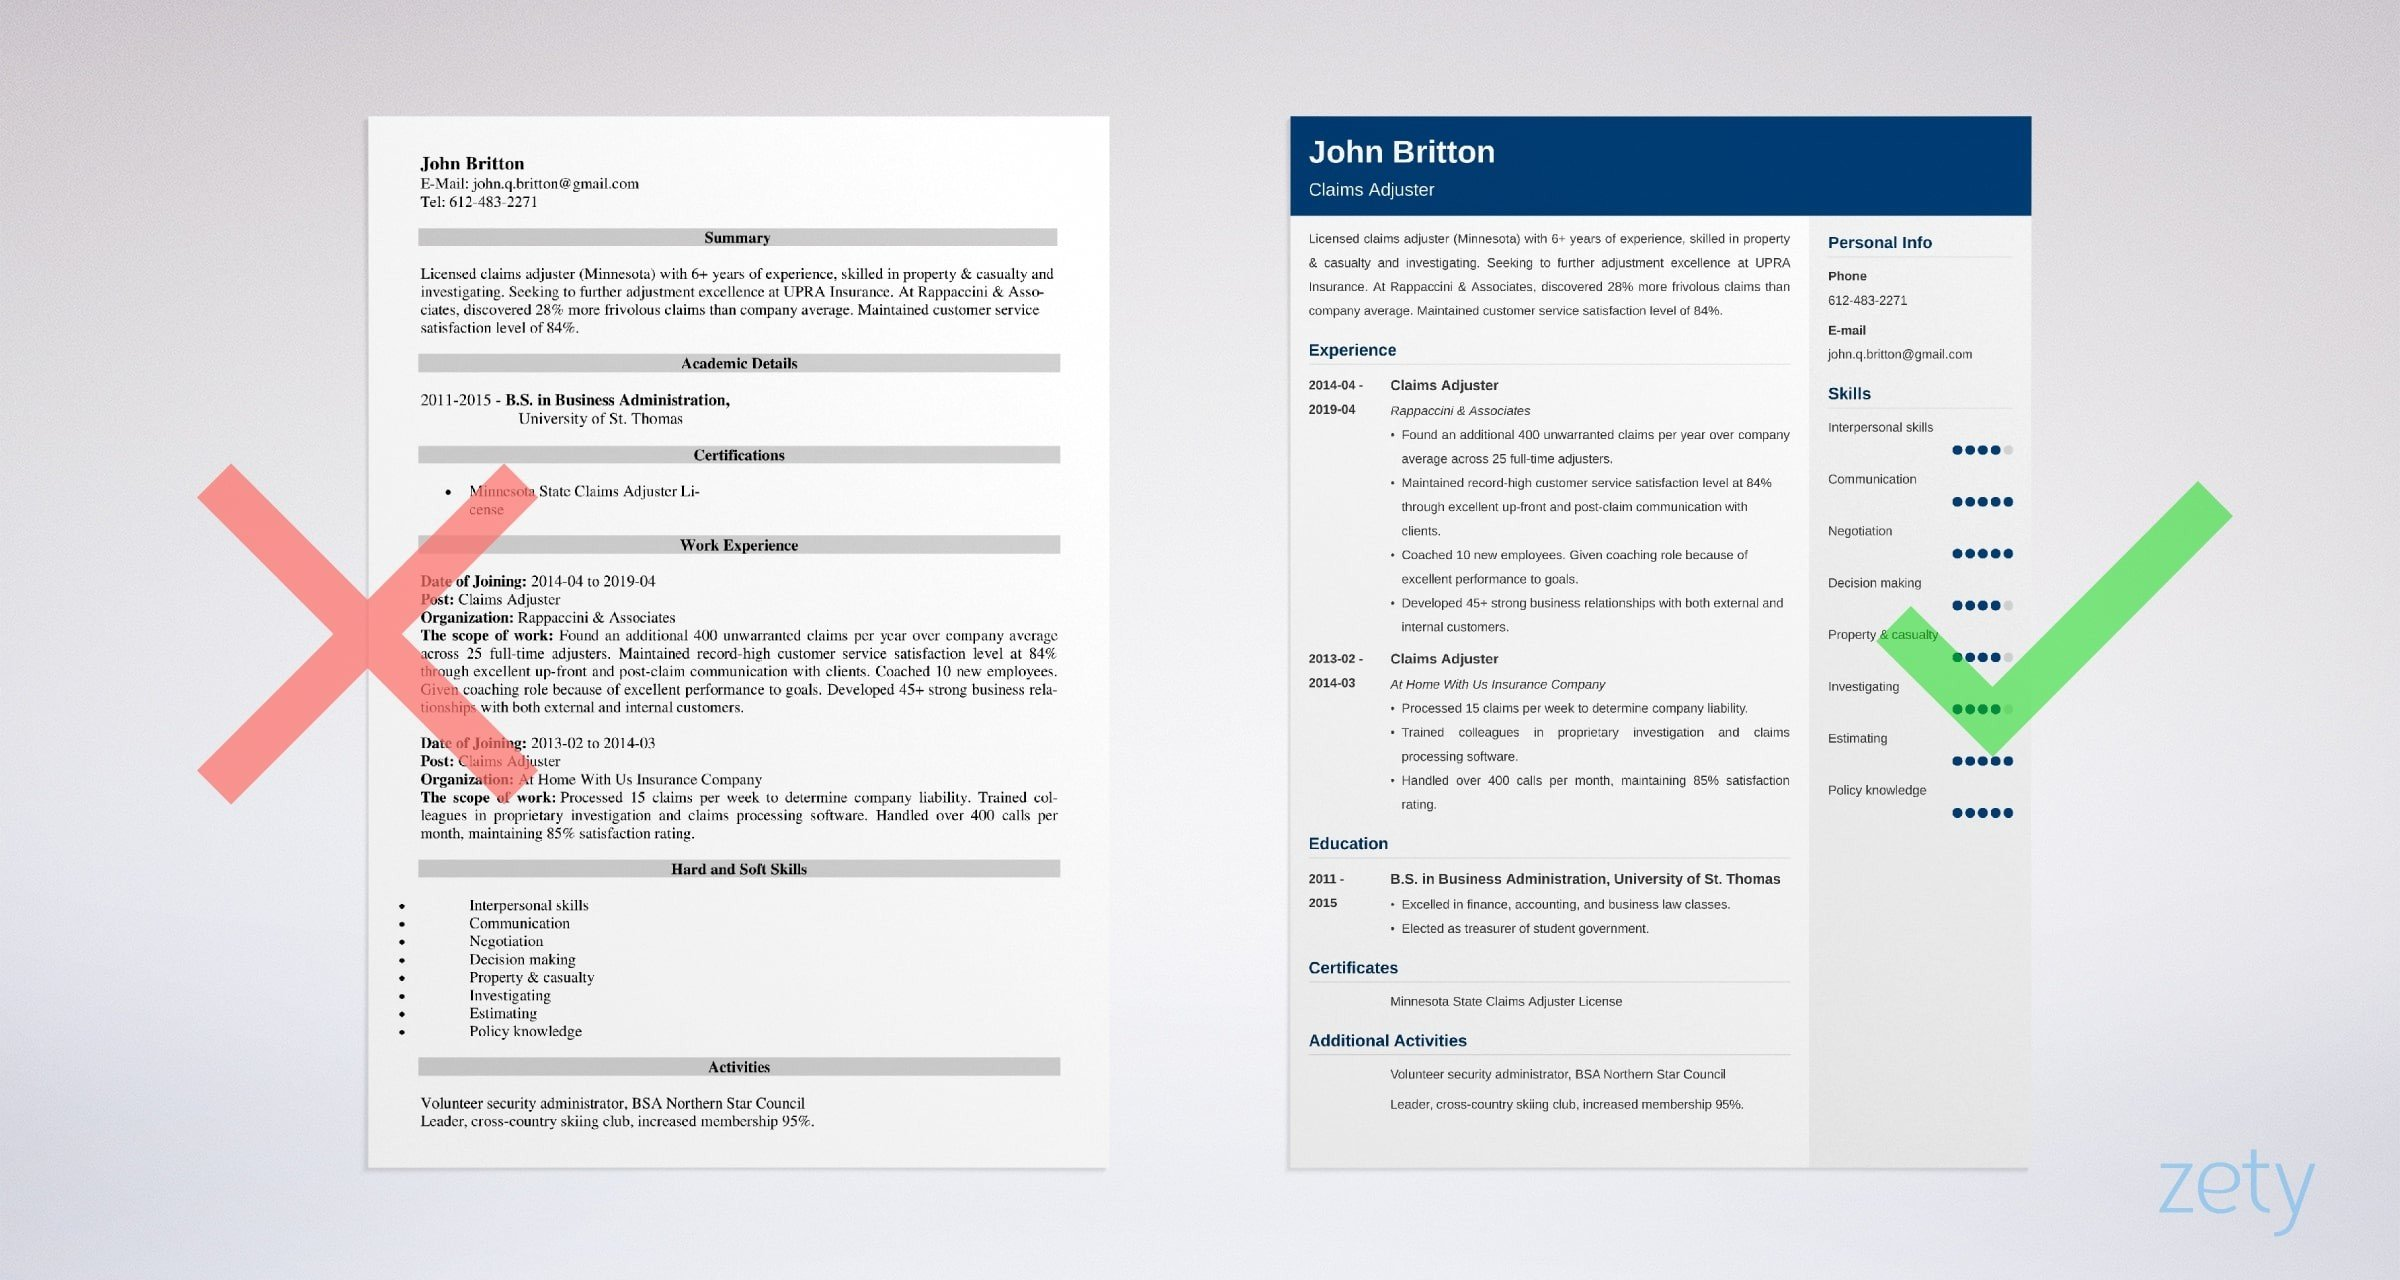 Claims Adjuster Resume: Sample and Full Writing Guide [20+ Tips]